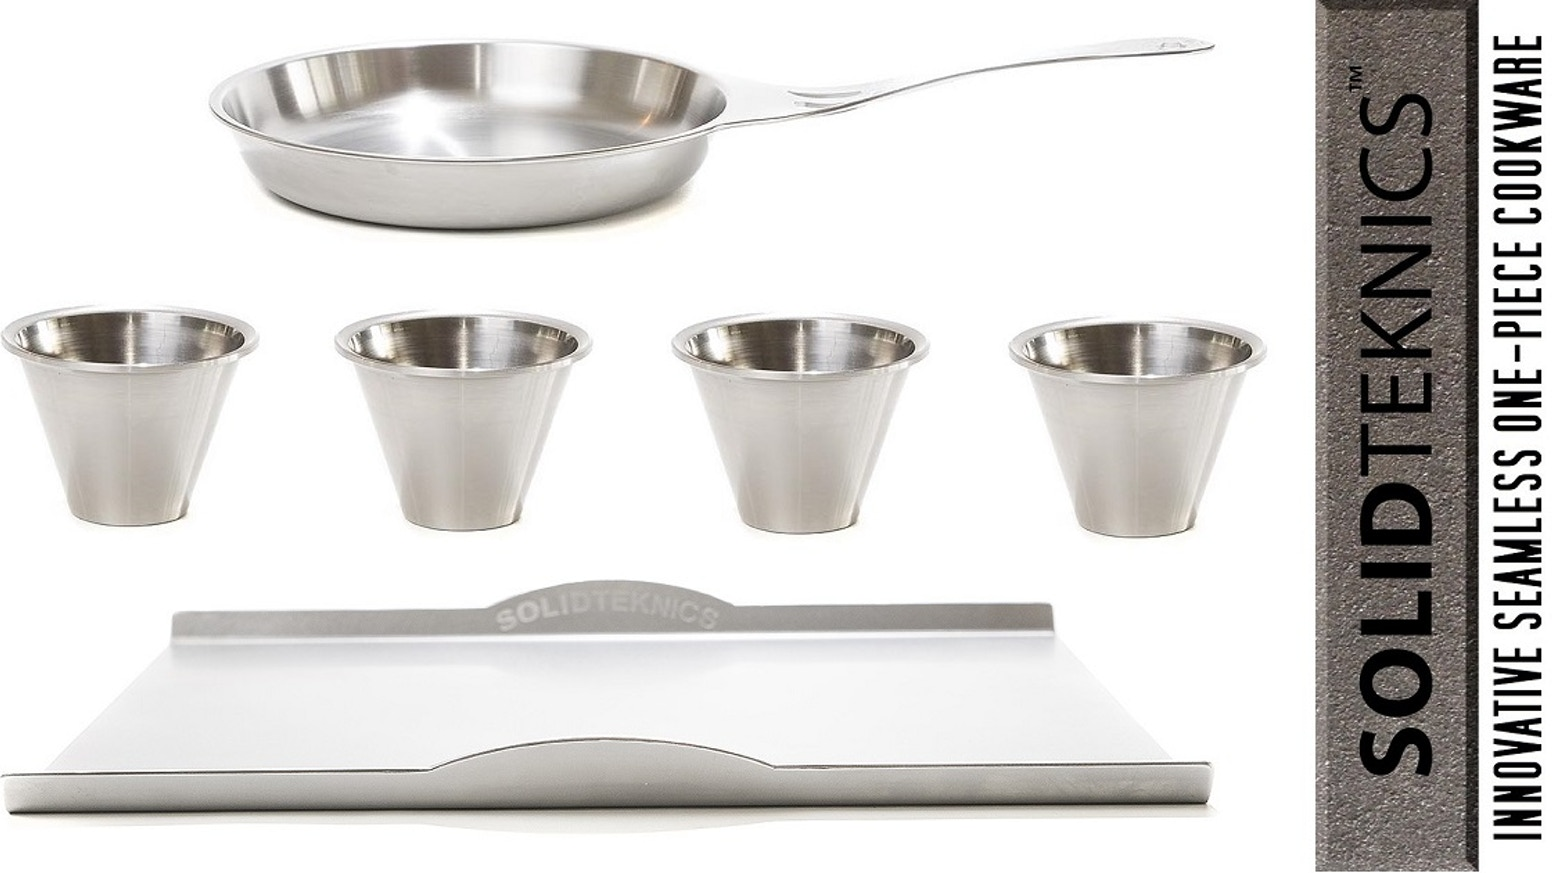 Chef-acclaimed. Healthy non-Nickel stainless, wrought in 1 SOLID 3mm piece. Patented. Multi-generation durable. Heirloom date stamped<3